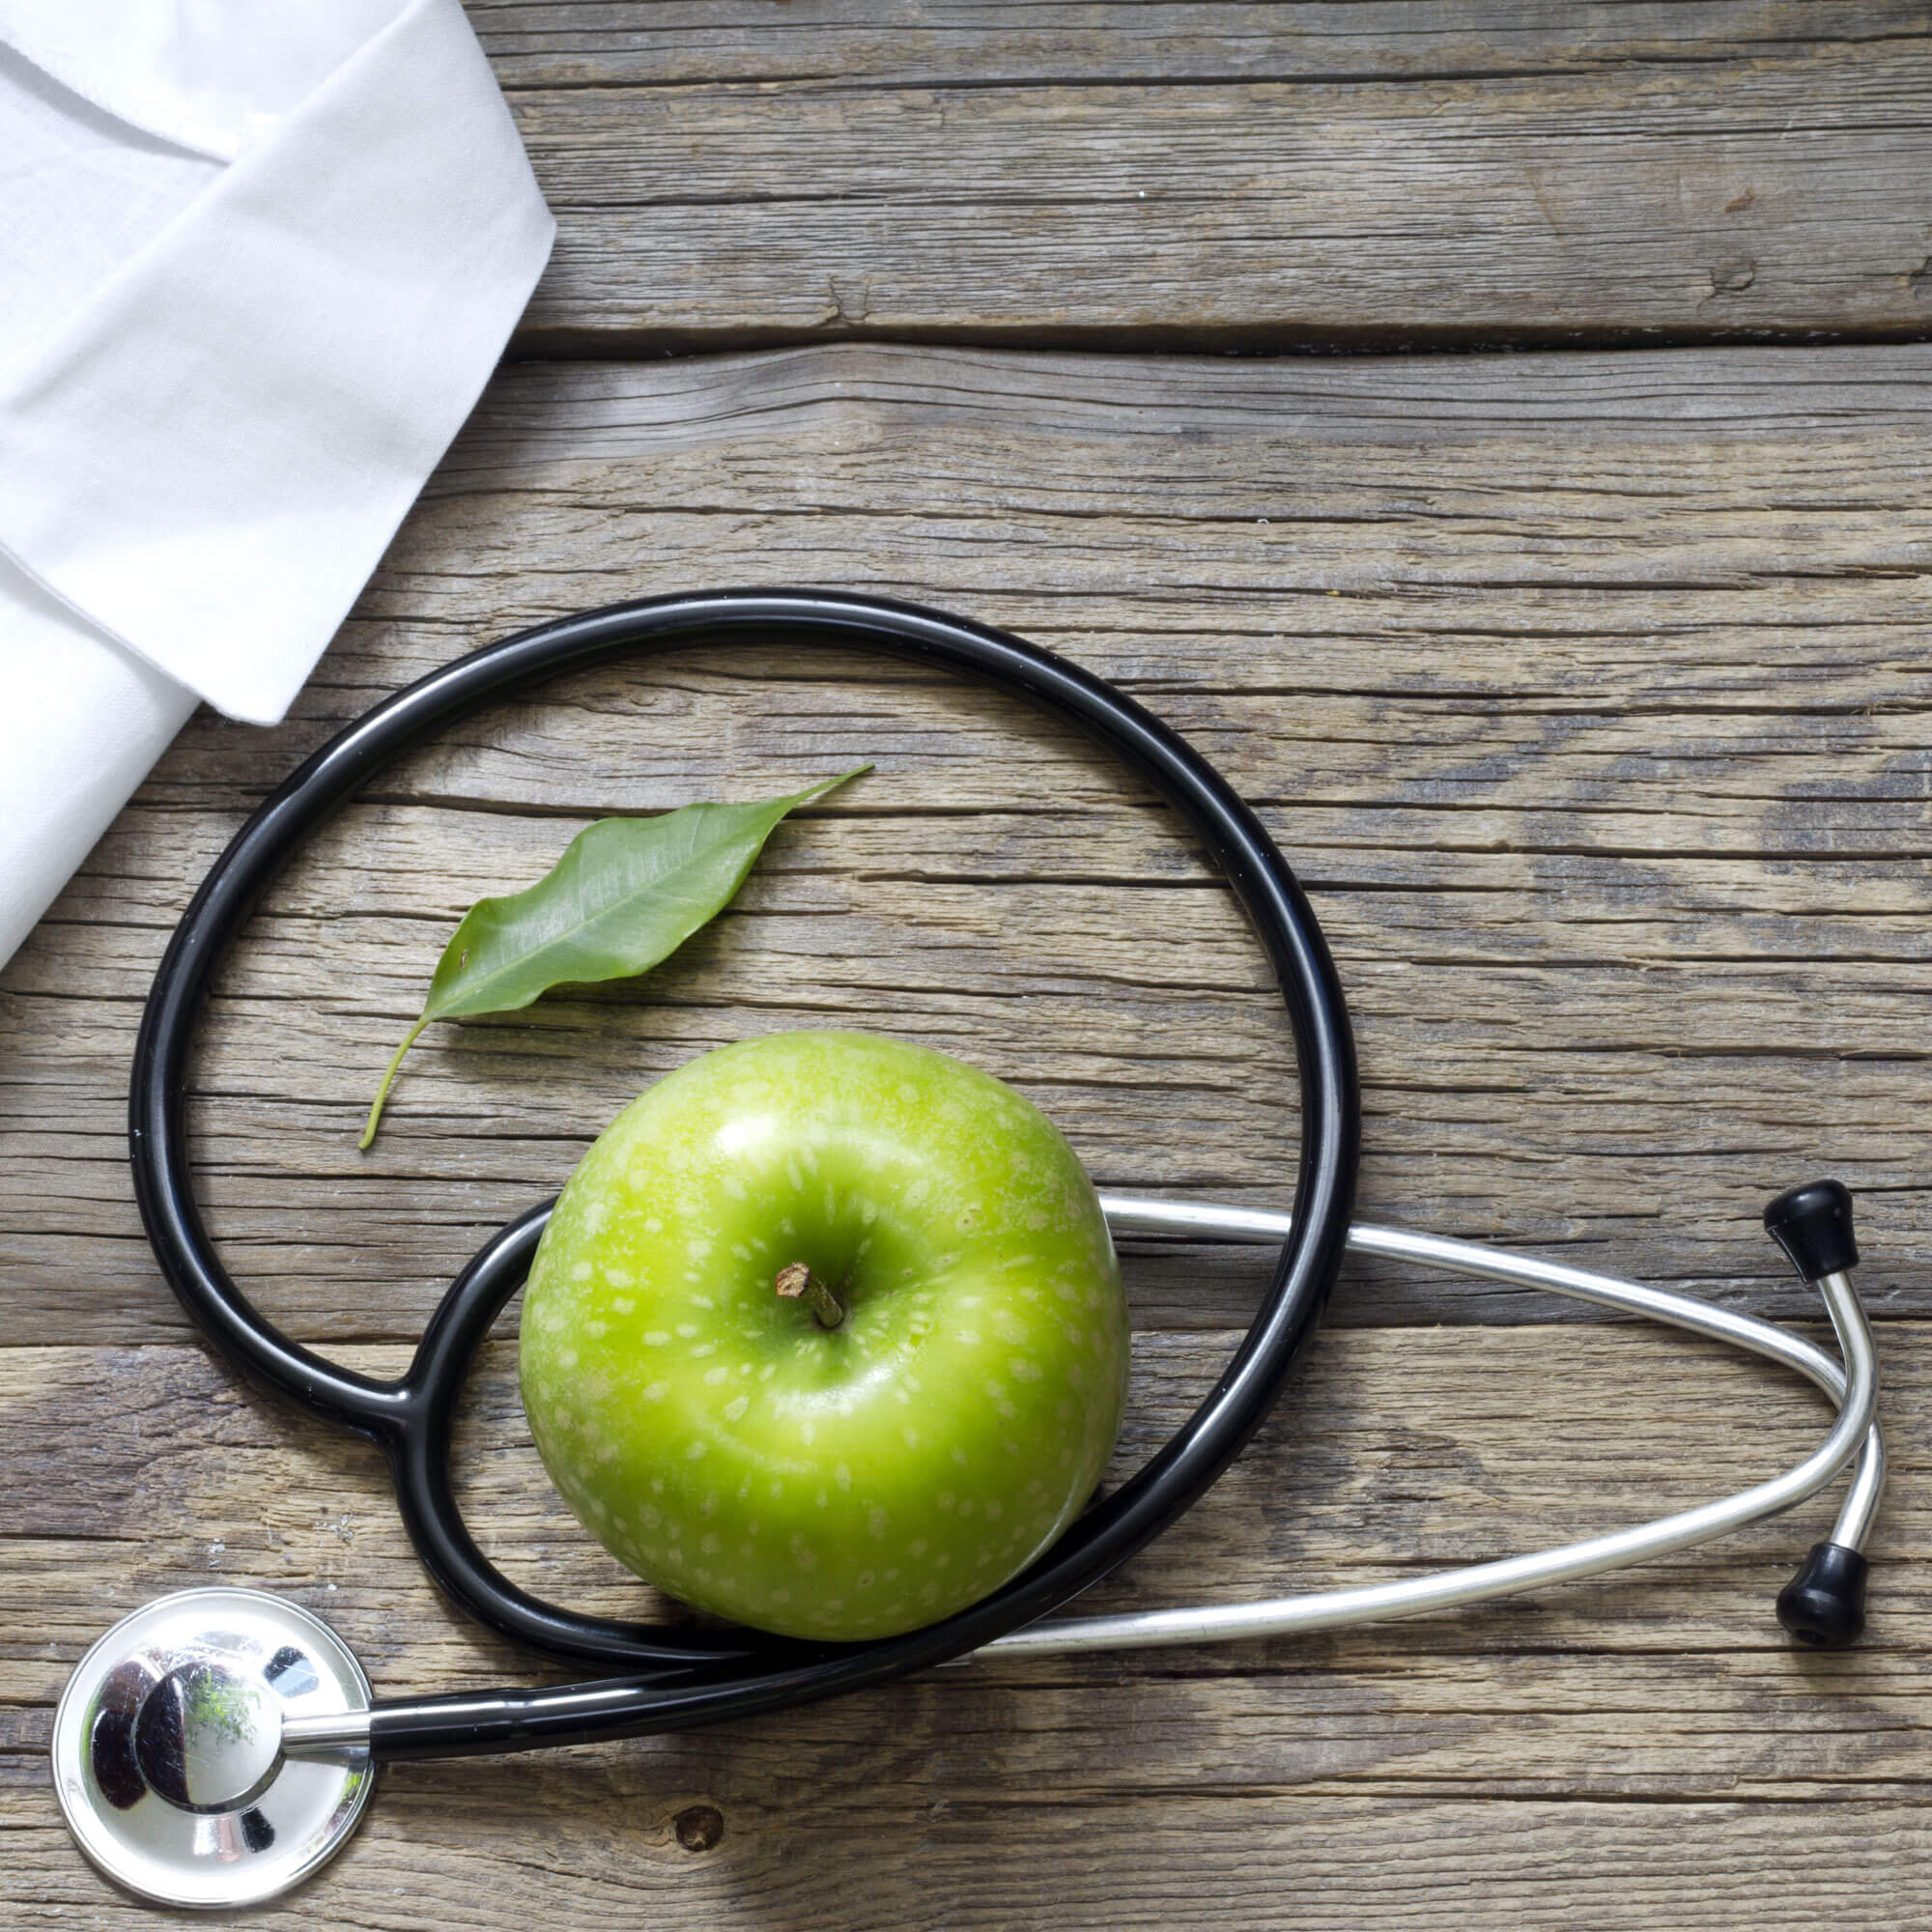 Green apple on a table with a stethoscope